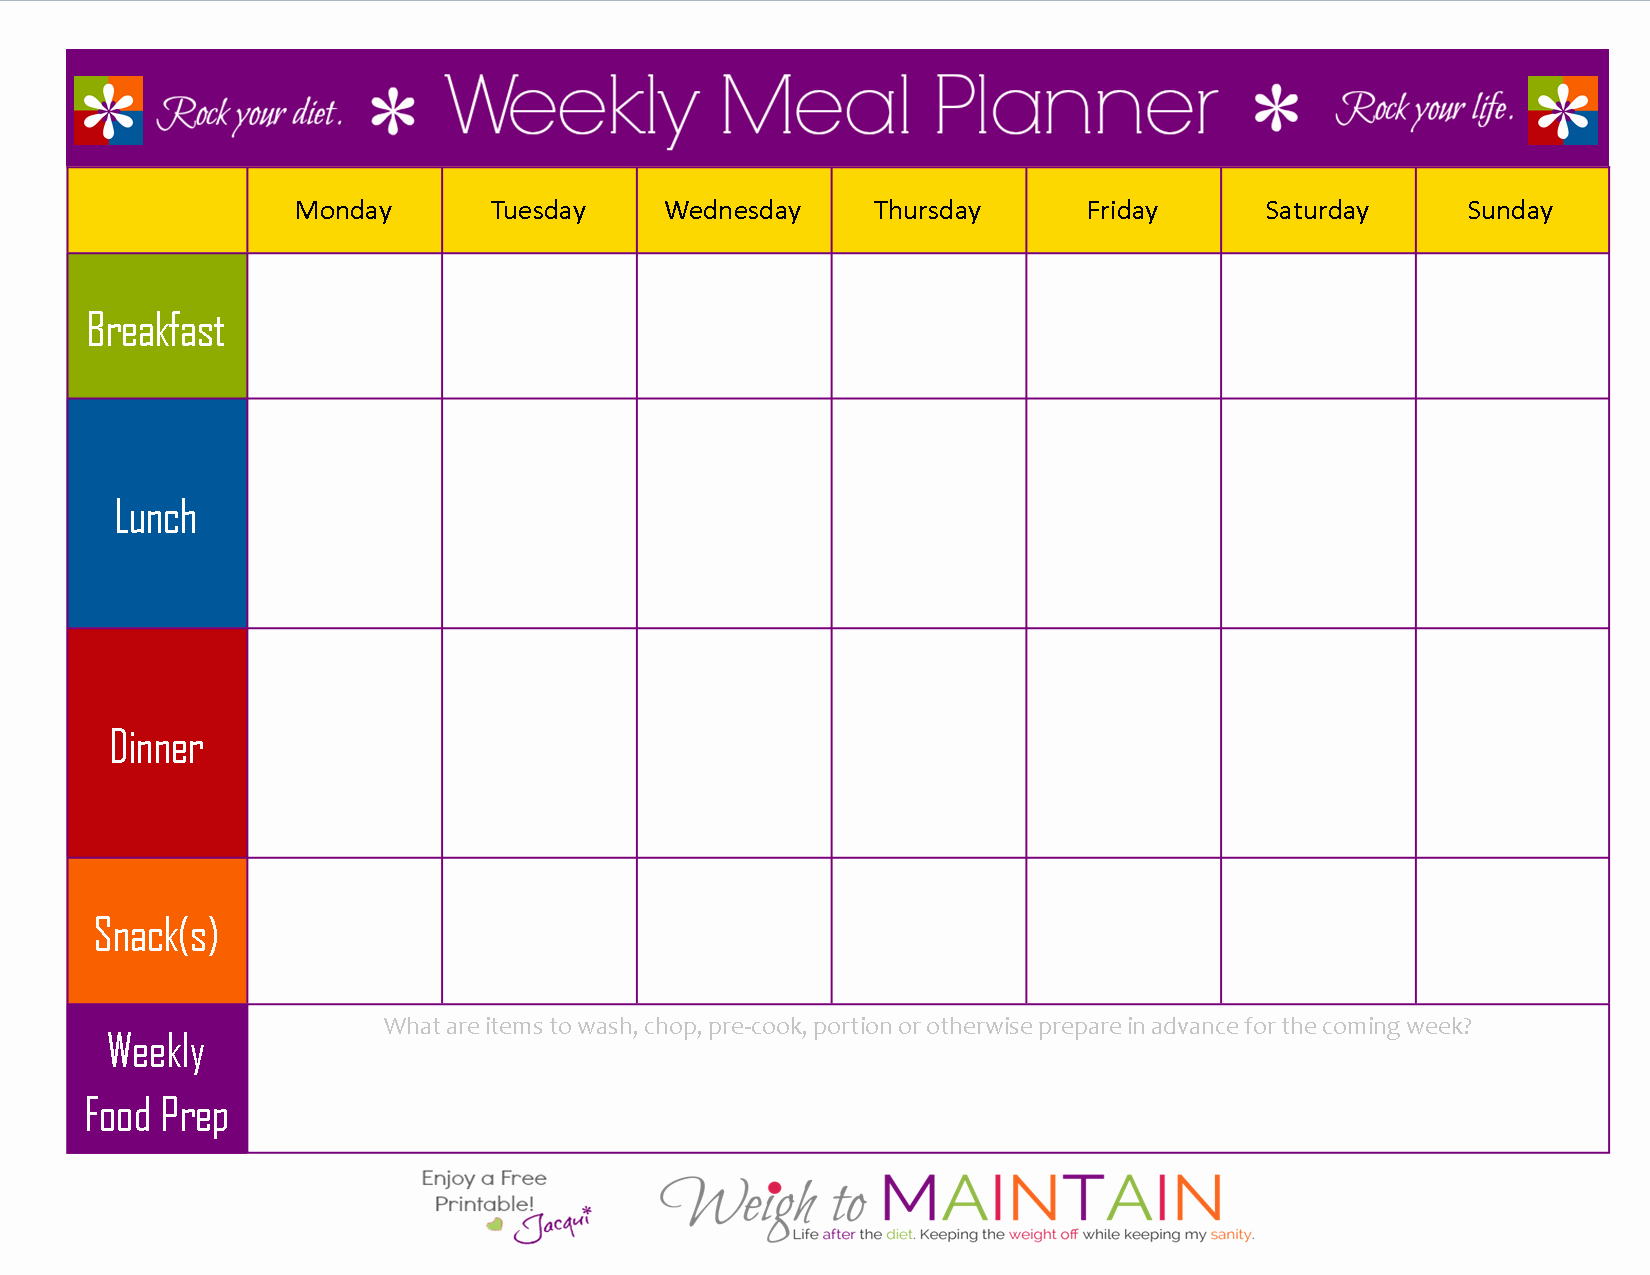 Weekly Meal and Snack Planner Awesome Meal Planning so Simple even A Gym Bro Can Do It with